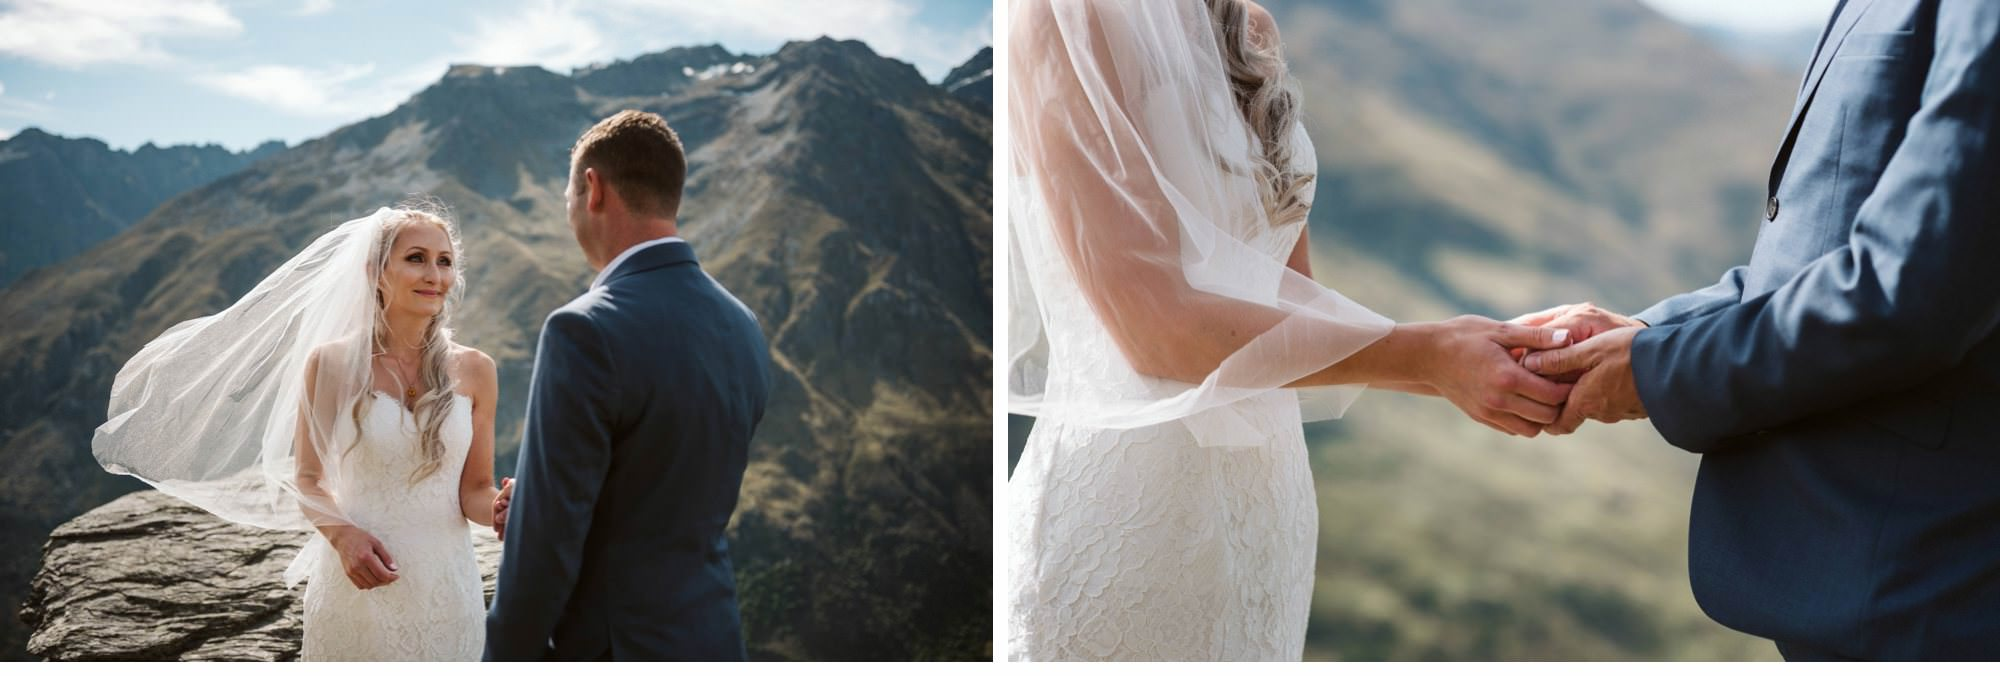 Queenstown Heli Elopement Photographer-007.jpg